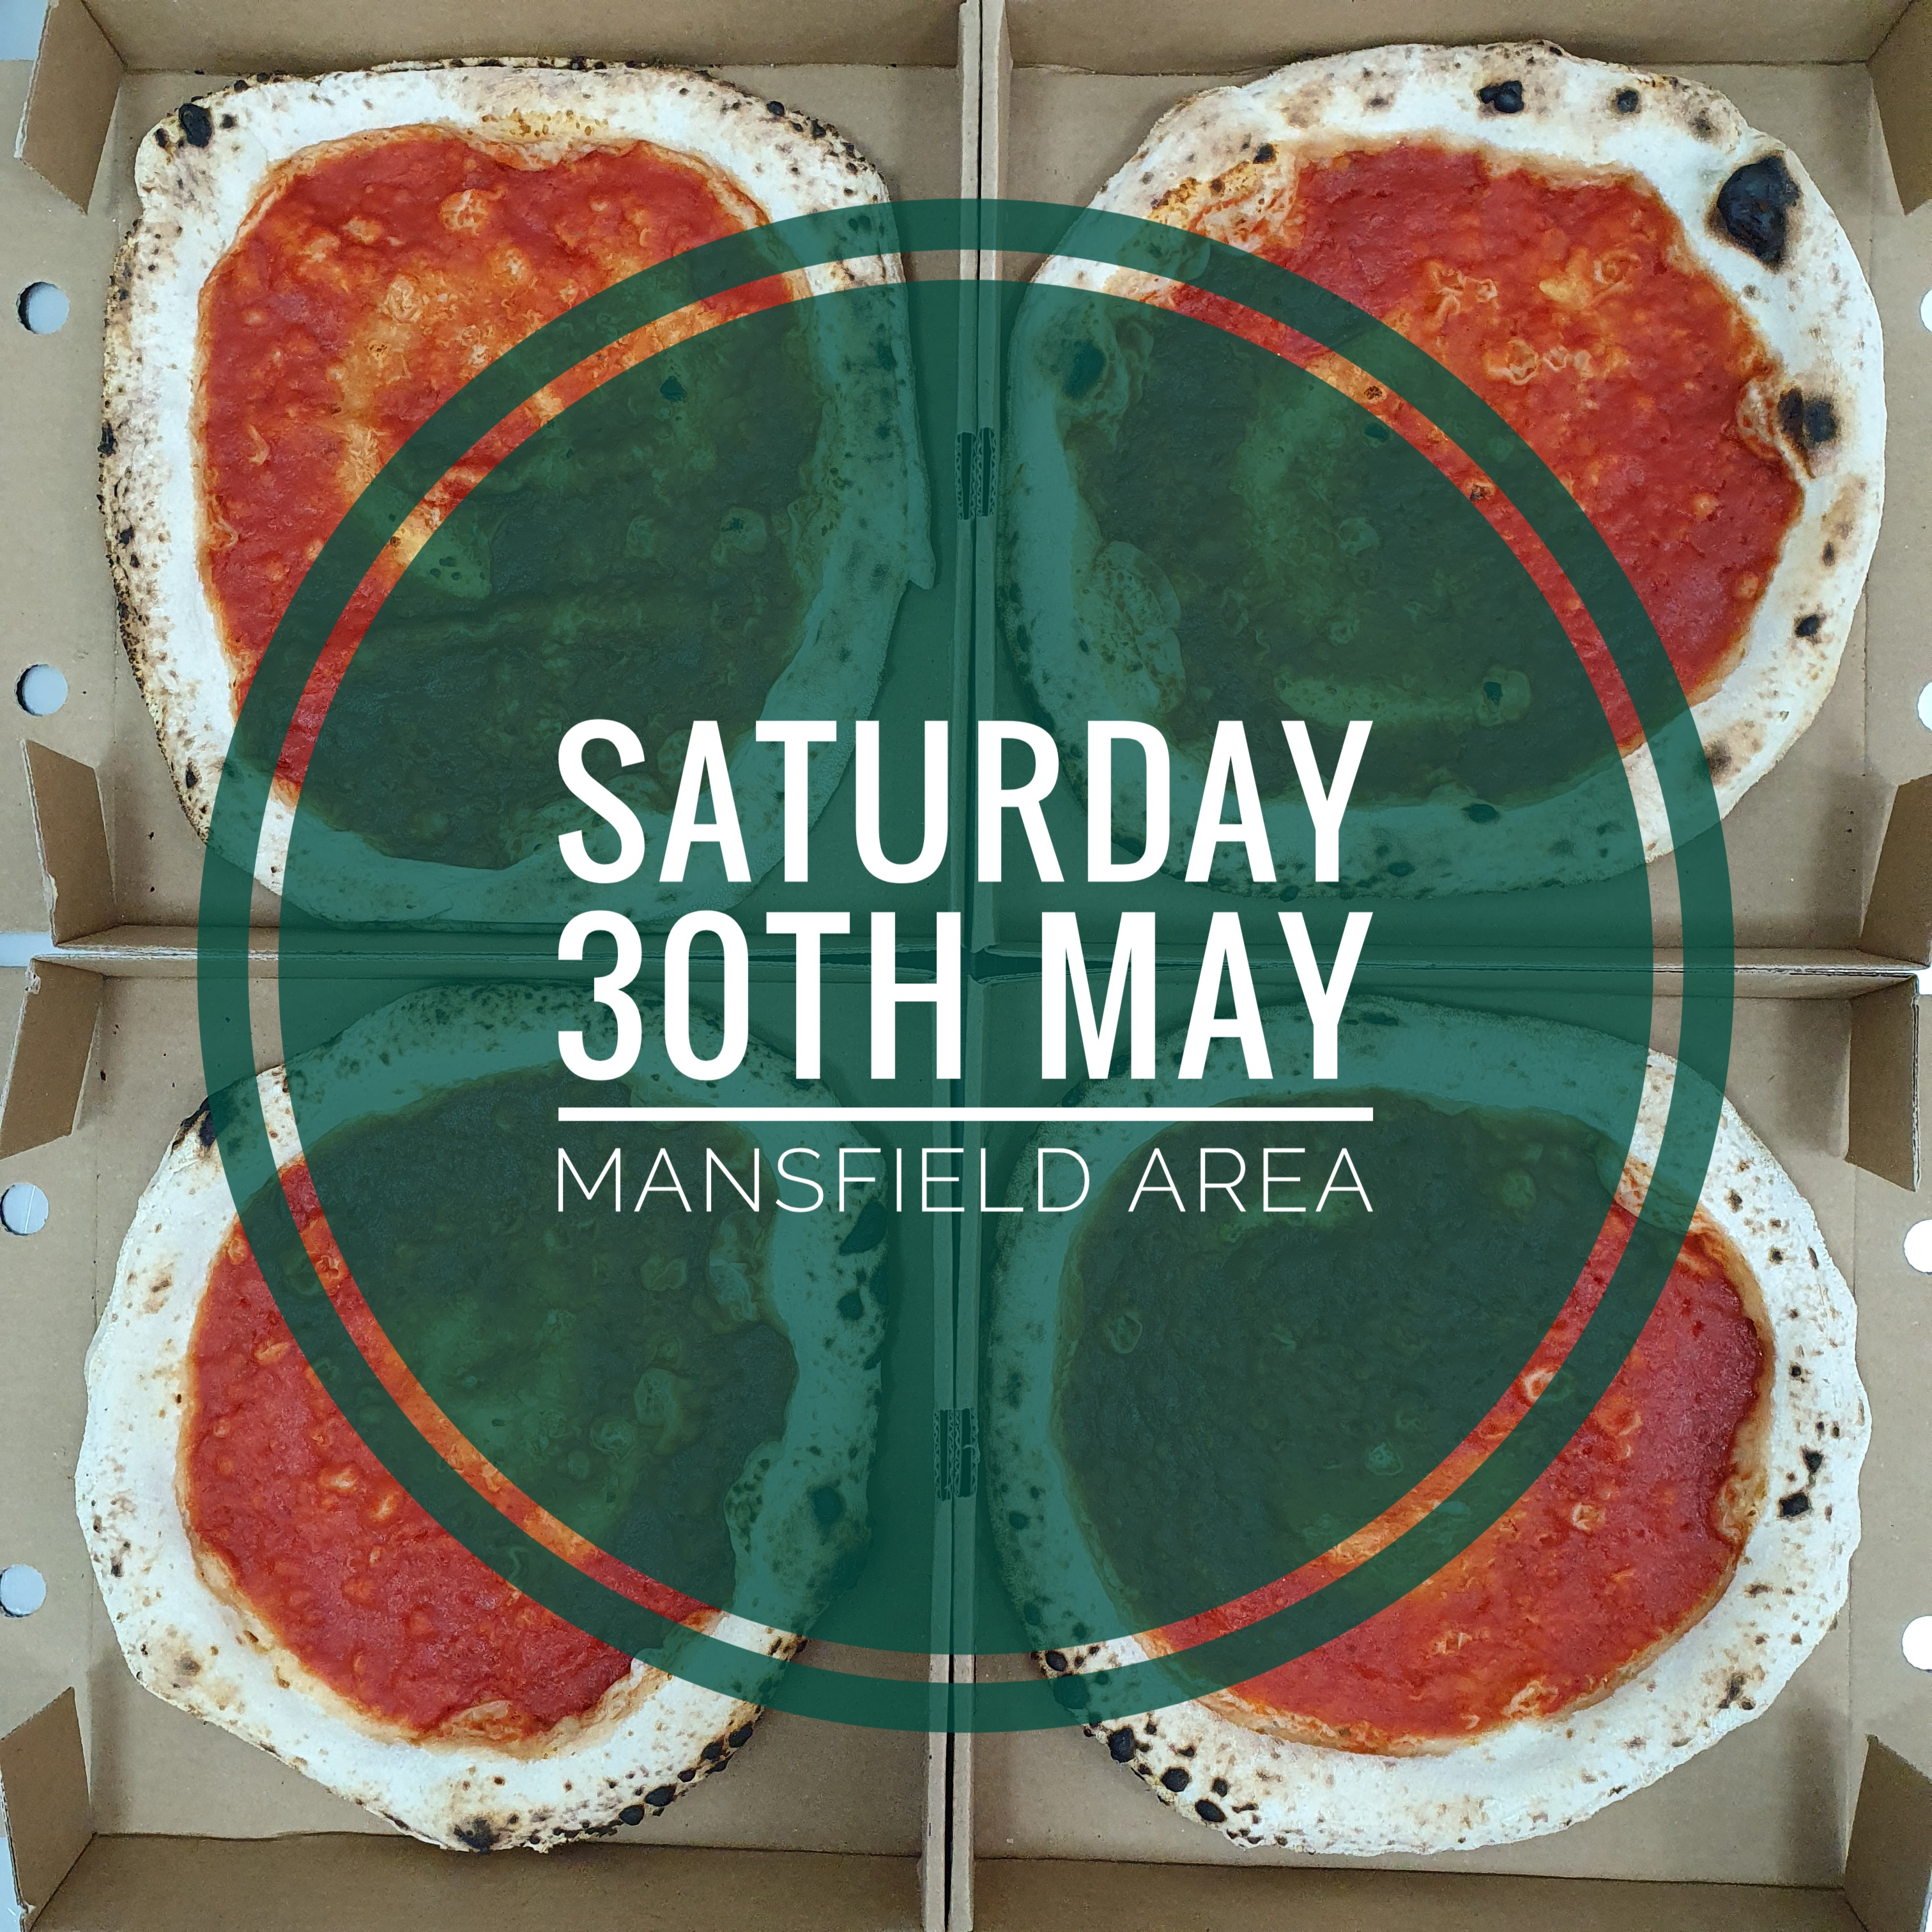 Sourdough Wood Fired Pizza Kit (SATURDAY 30th MAY MANSFIELD AREA)